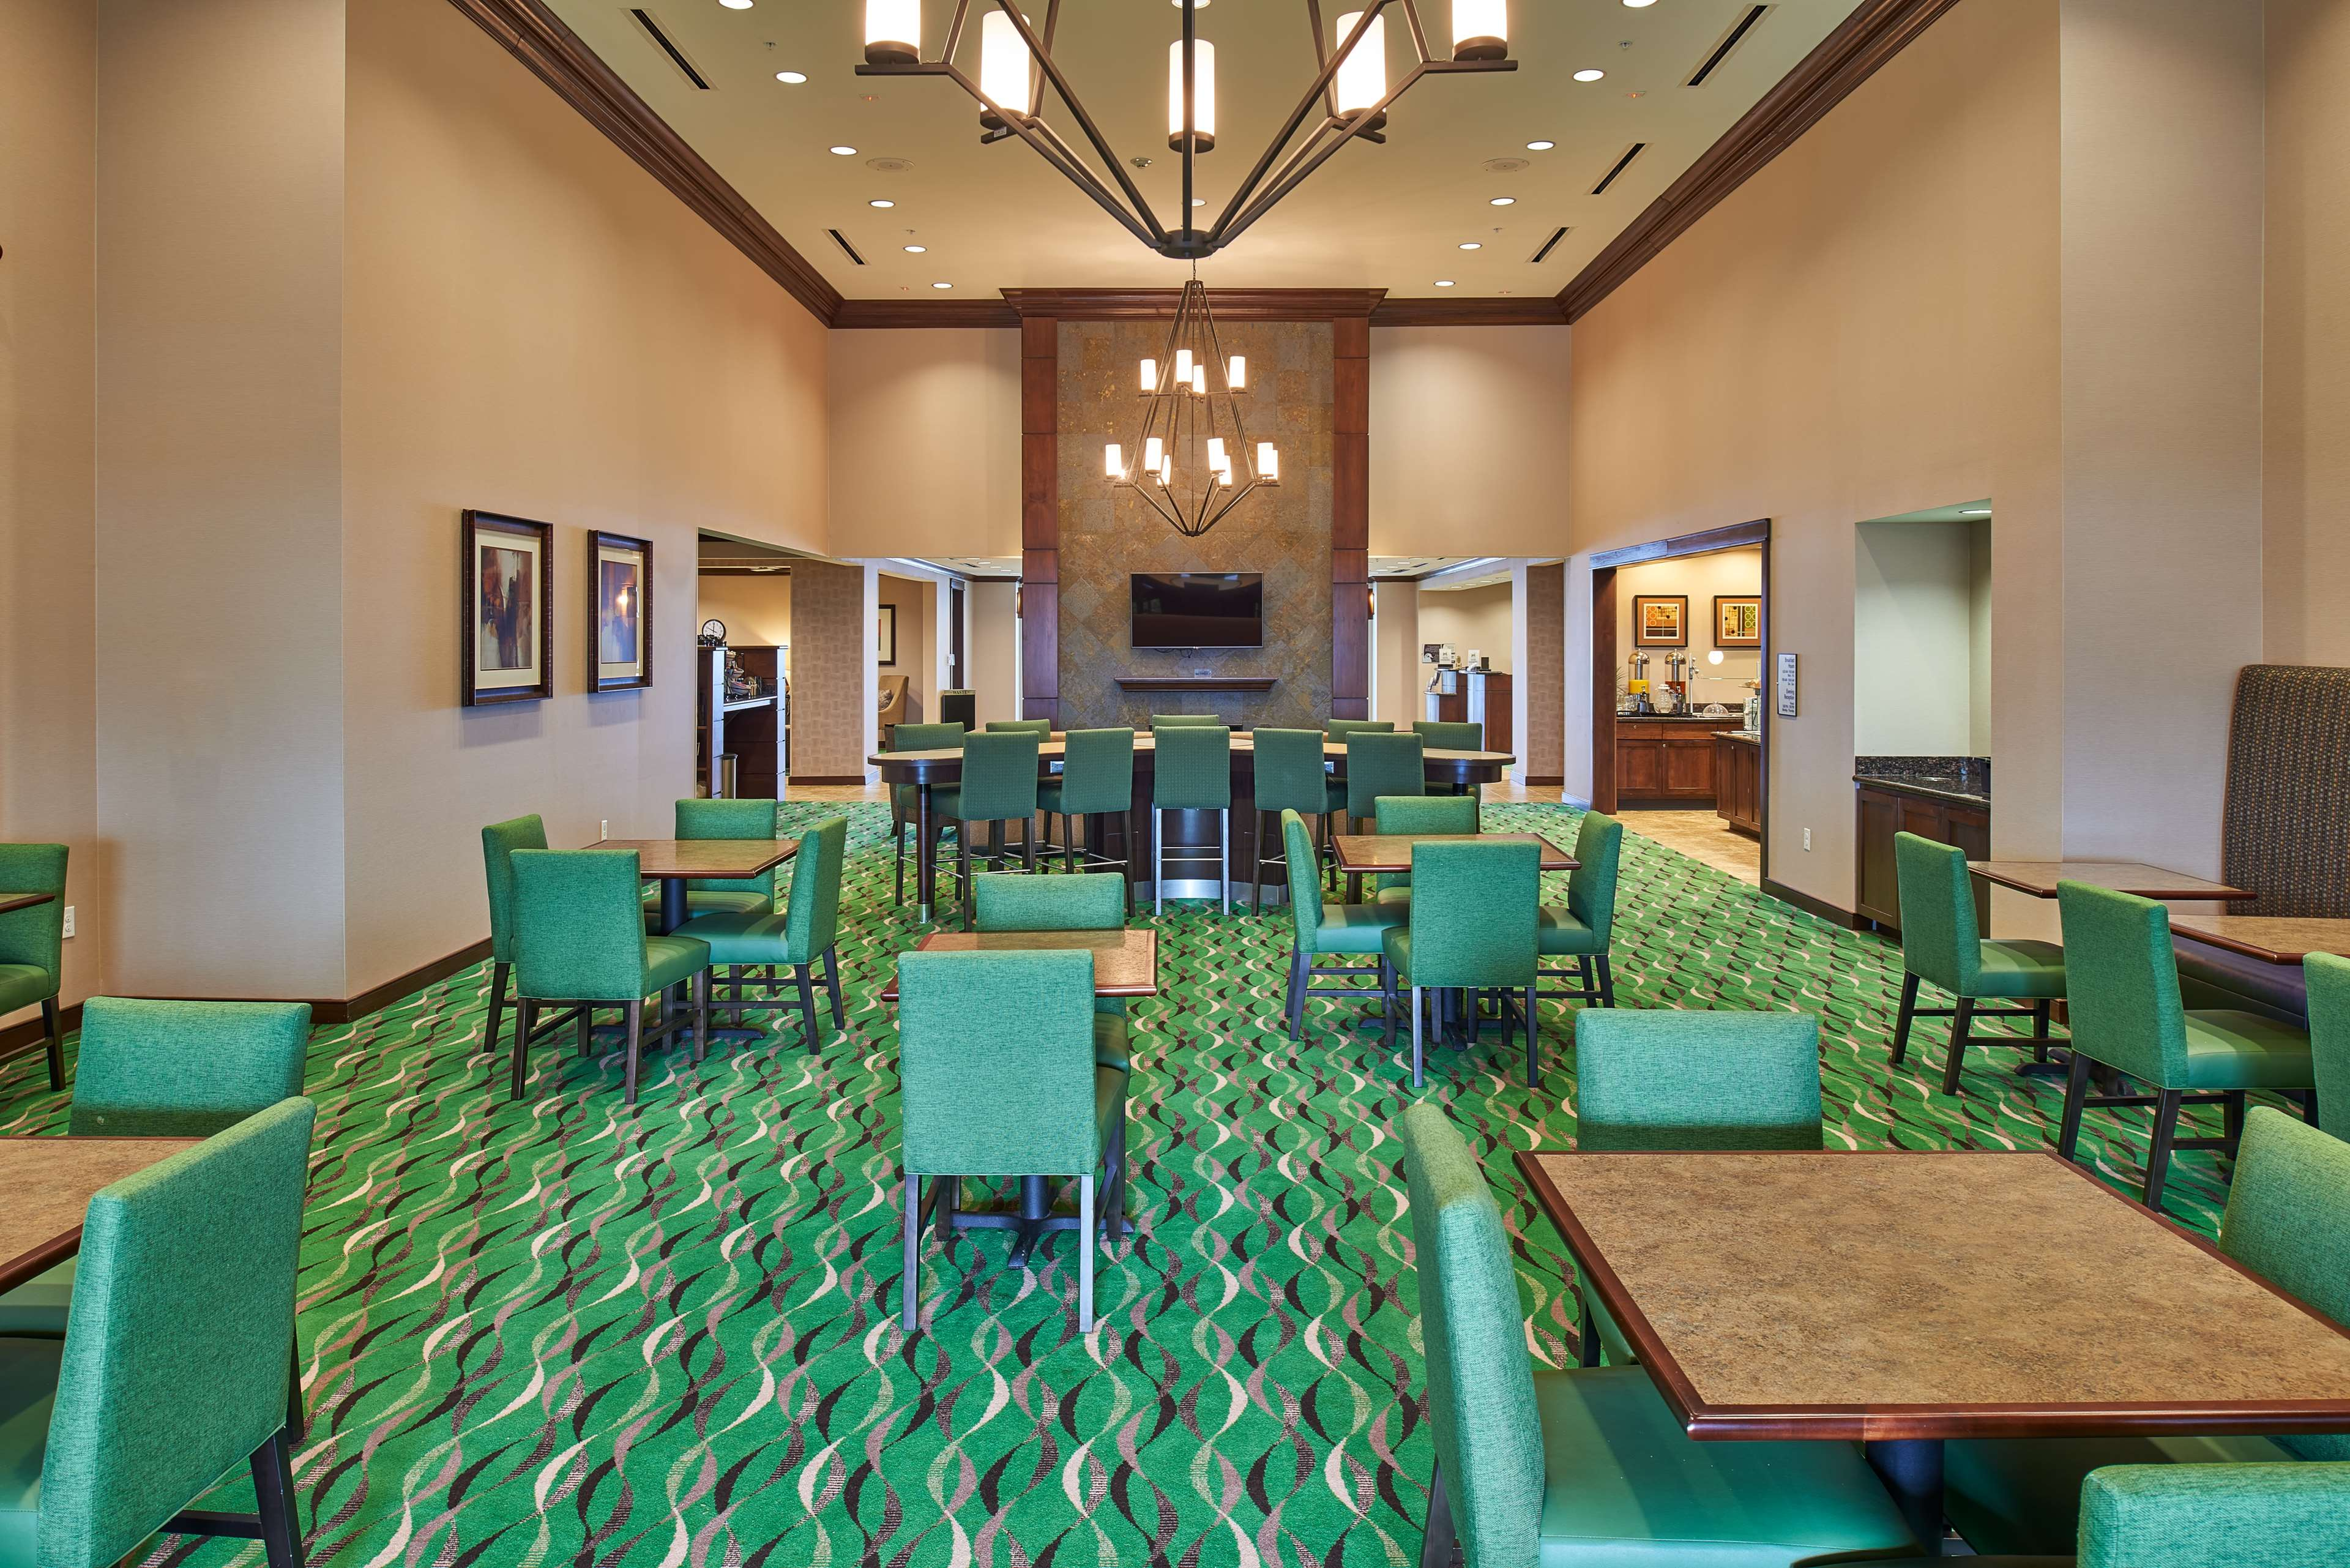 Homewood Suites by Hilton Odessa image 1